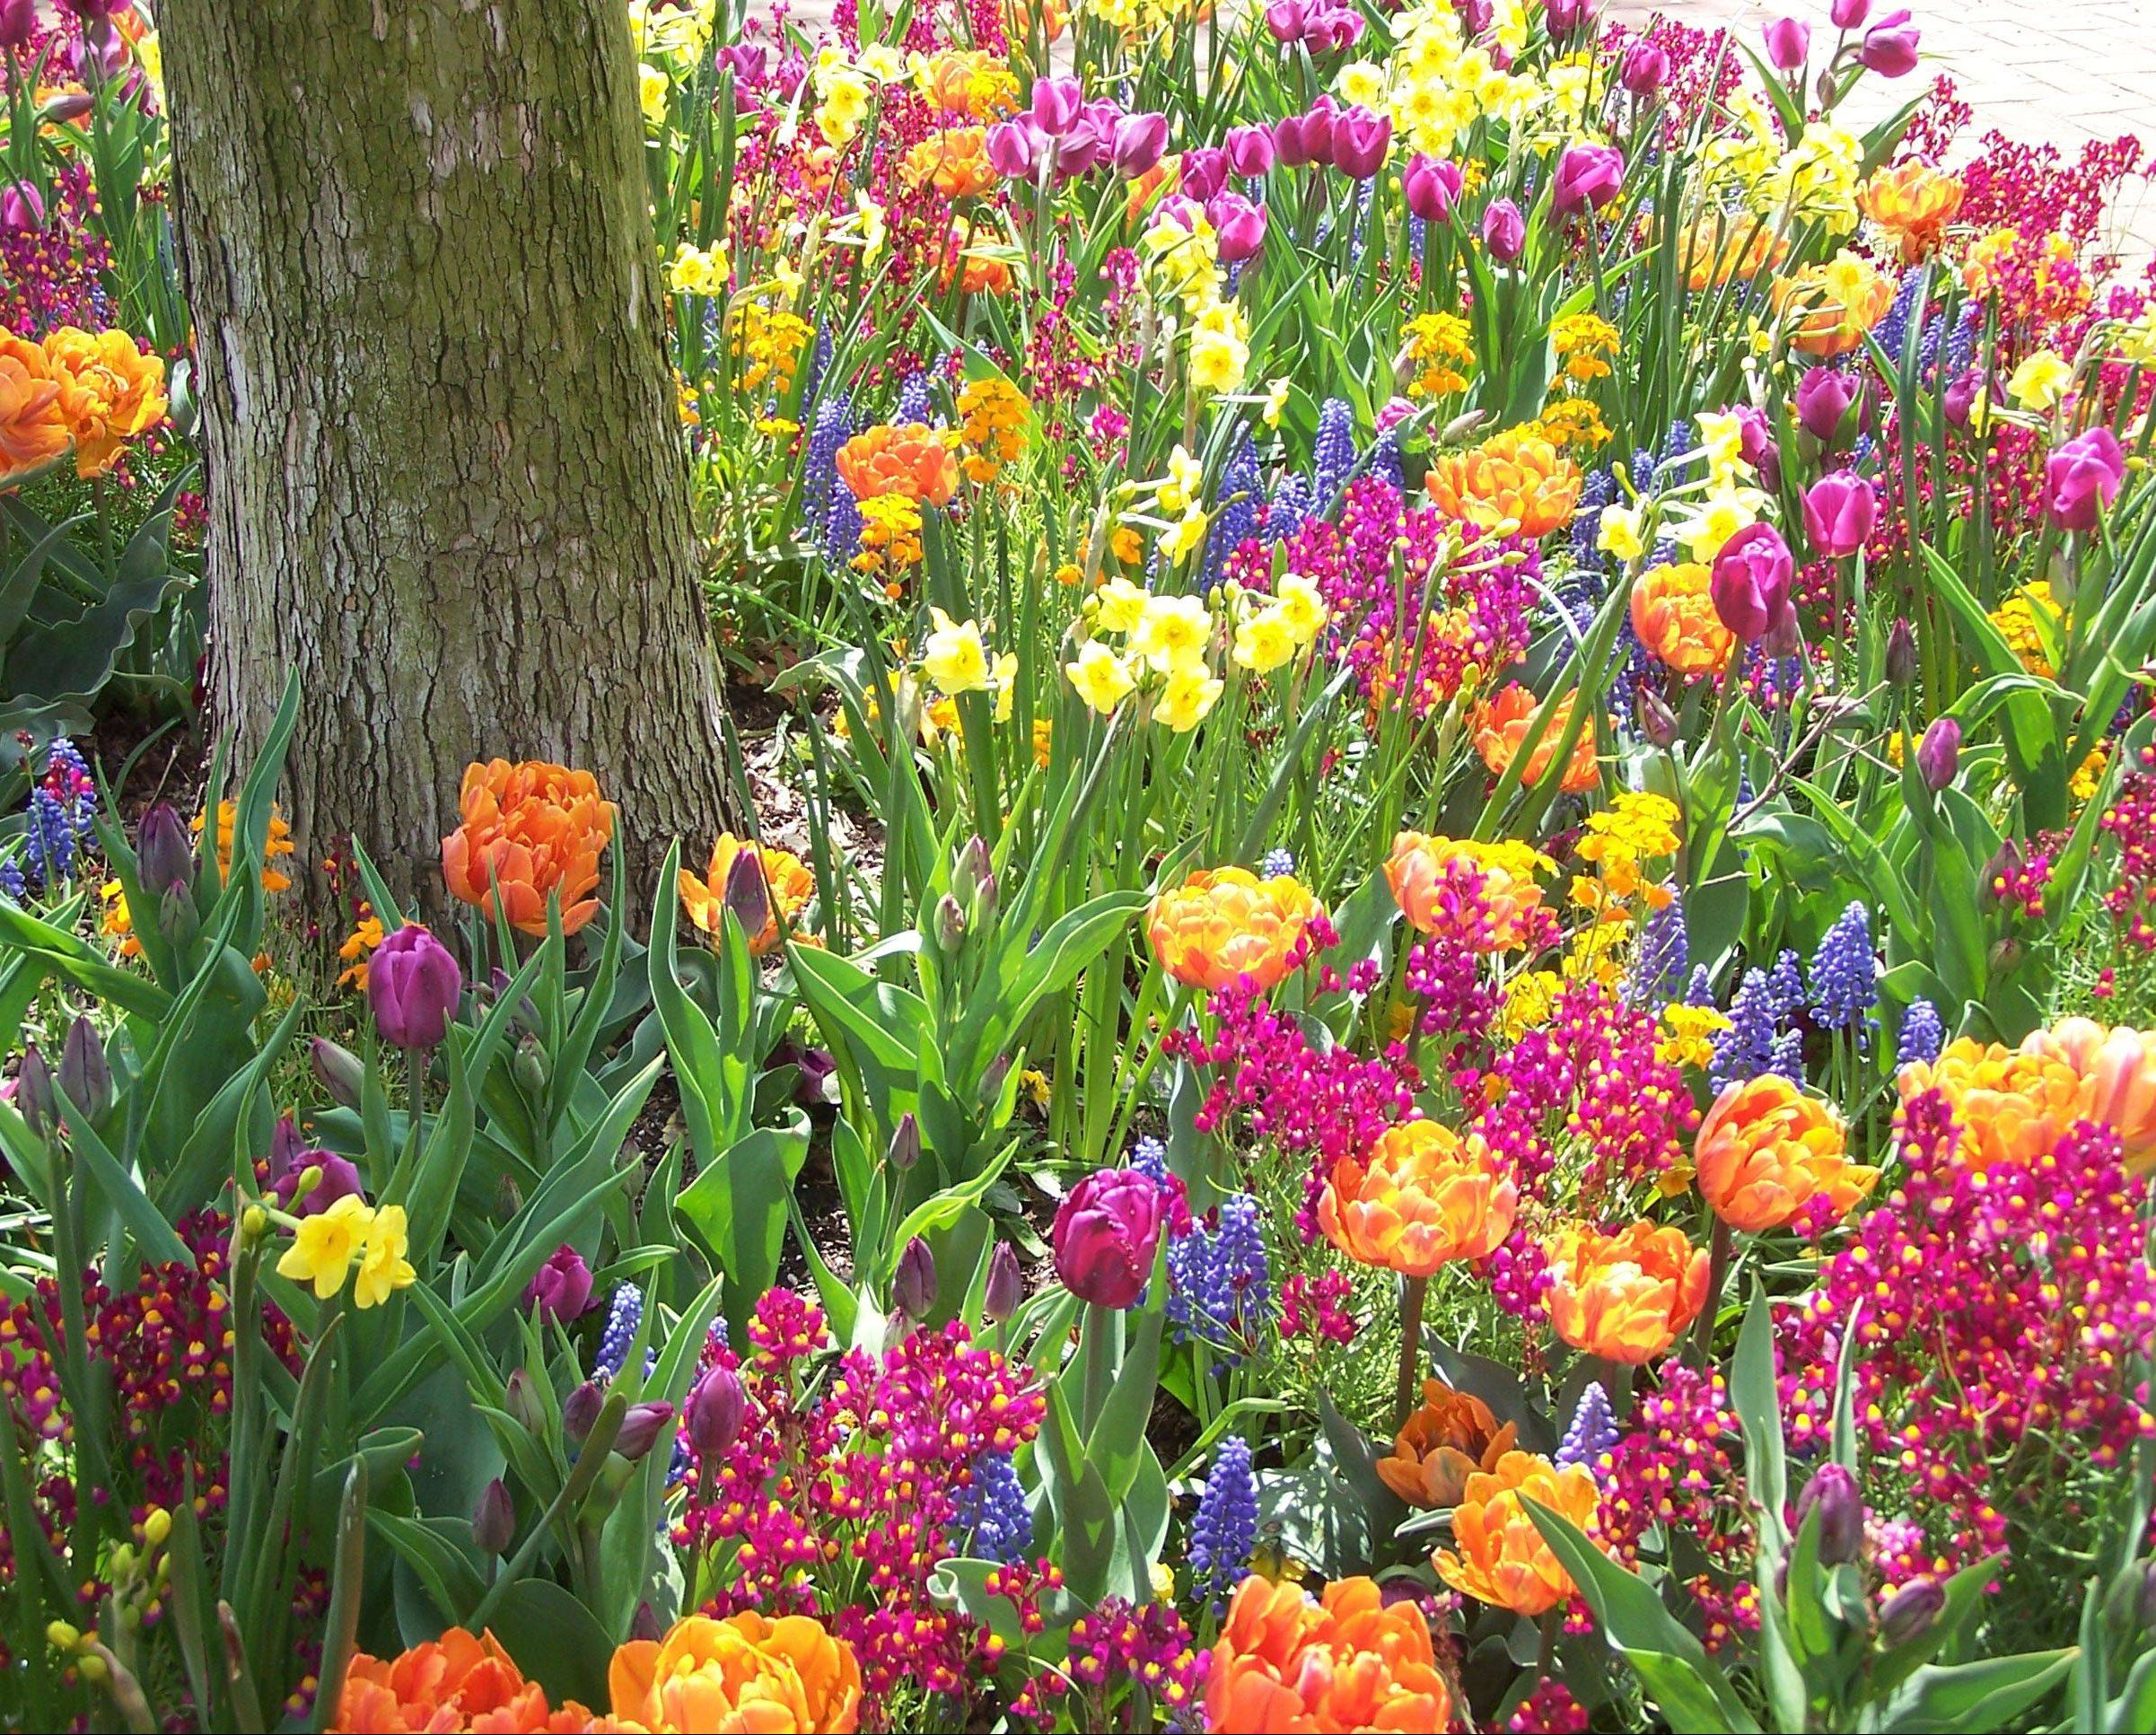 Orange and purple tulips, yellow daffodils and grape hyacinths create a riot of spring color.